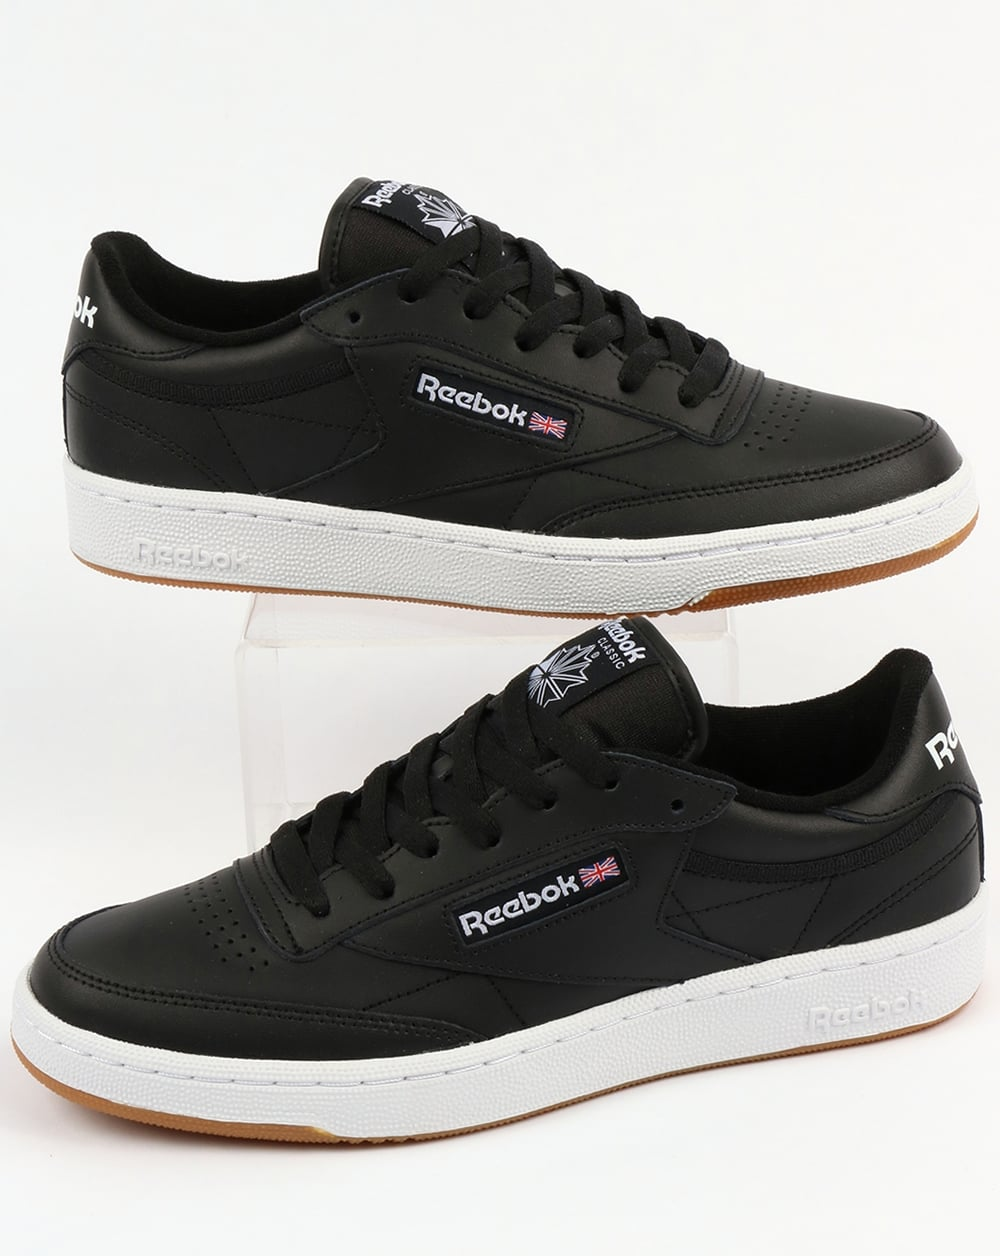 reebok club c tennis shoes black